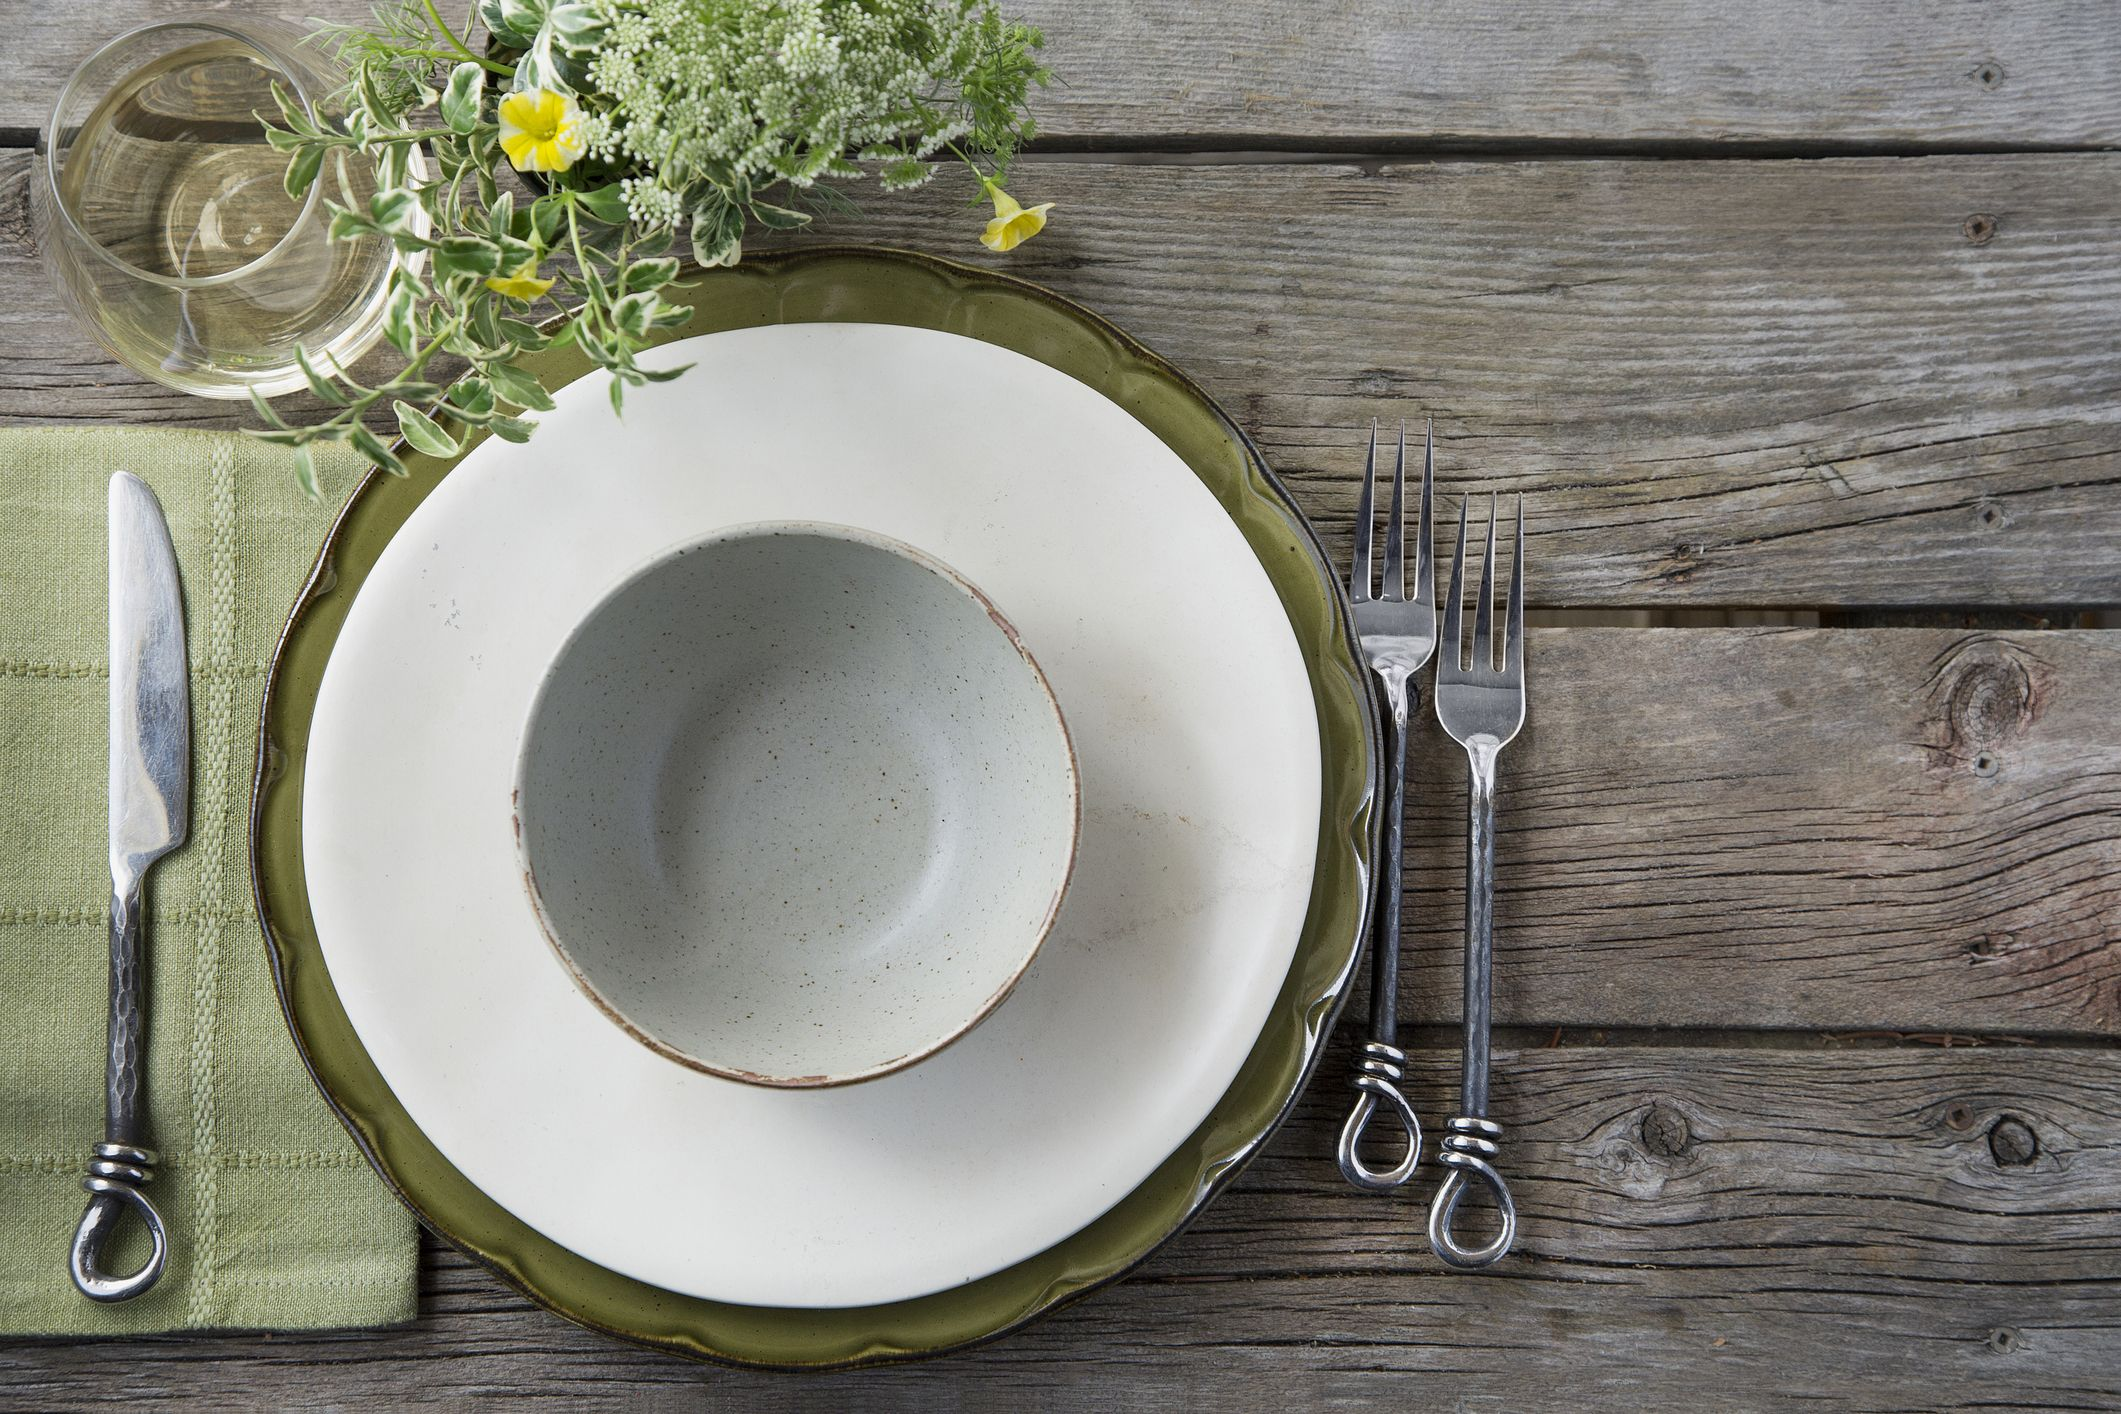 Table_setting_gettyimages-518338199_flip